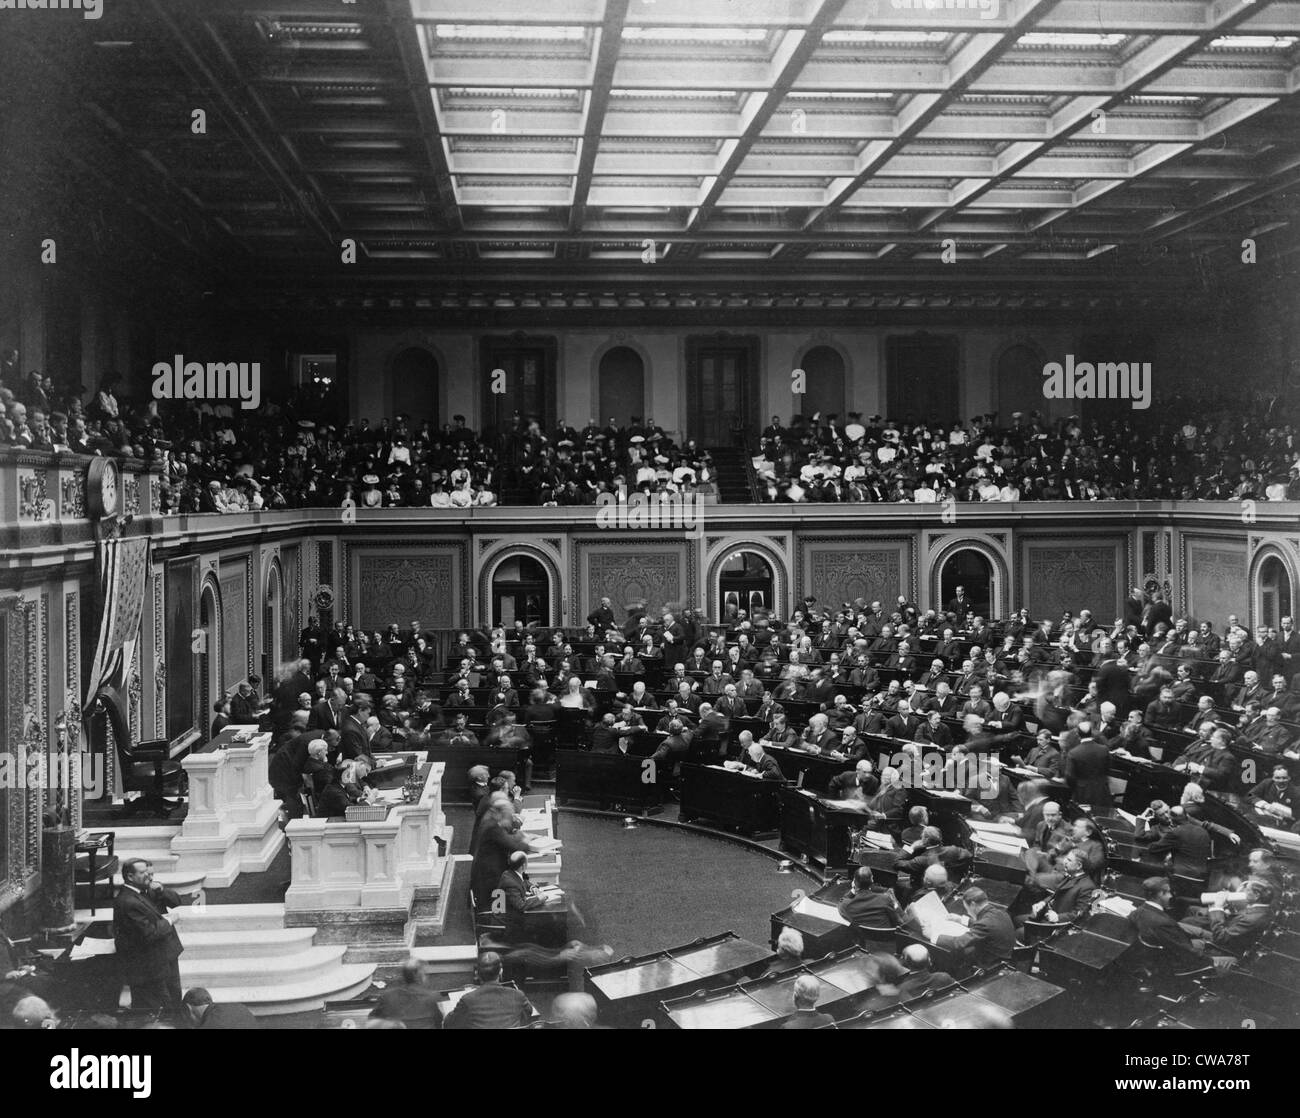 Opening of fifty-ninth Congress by   Cannon, Joseph Gurney Cannon (1836-1926) in 1906. - Stock Image